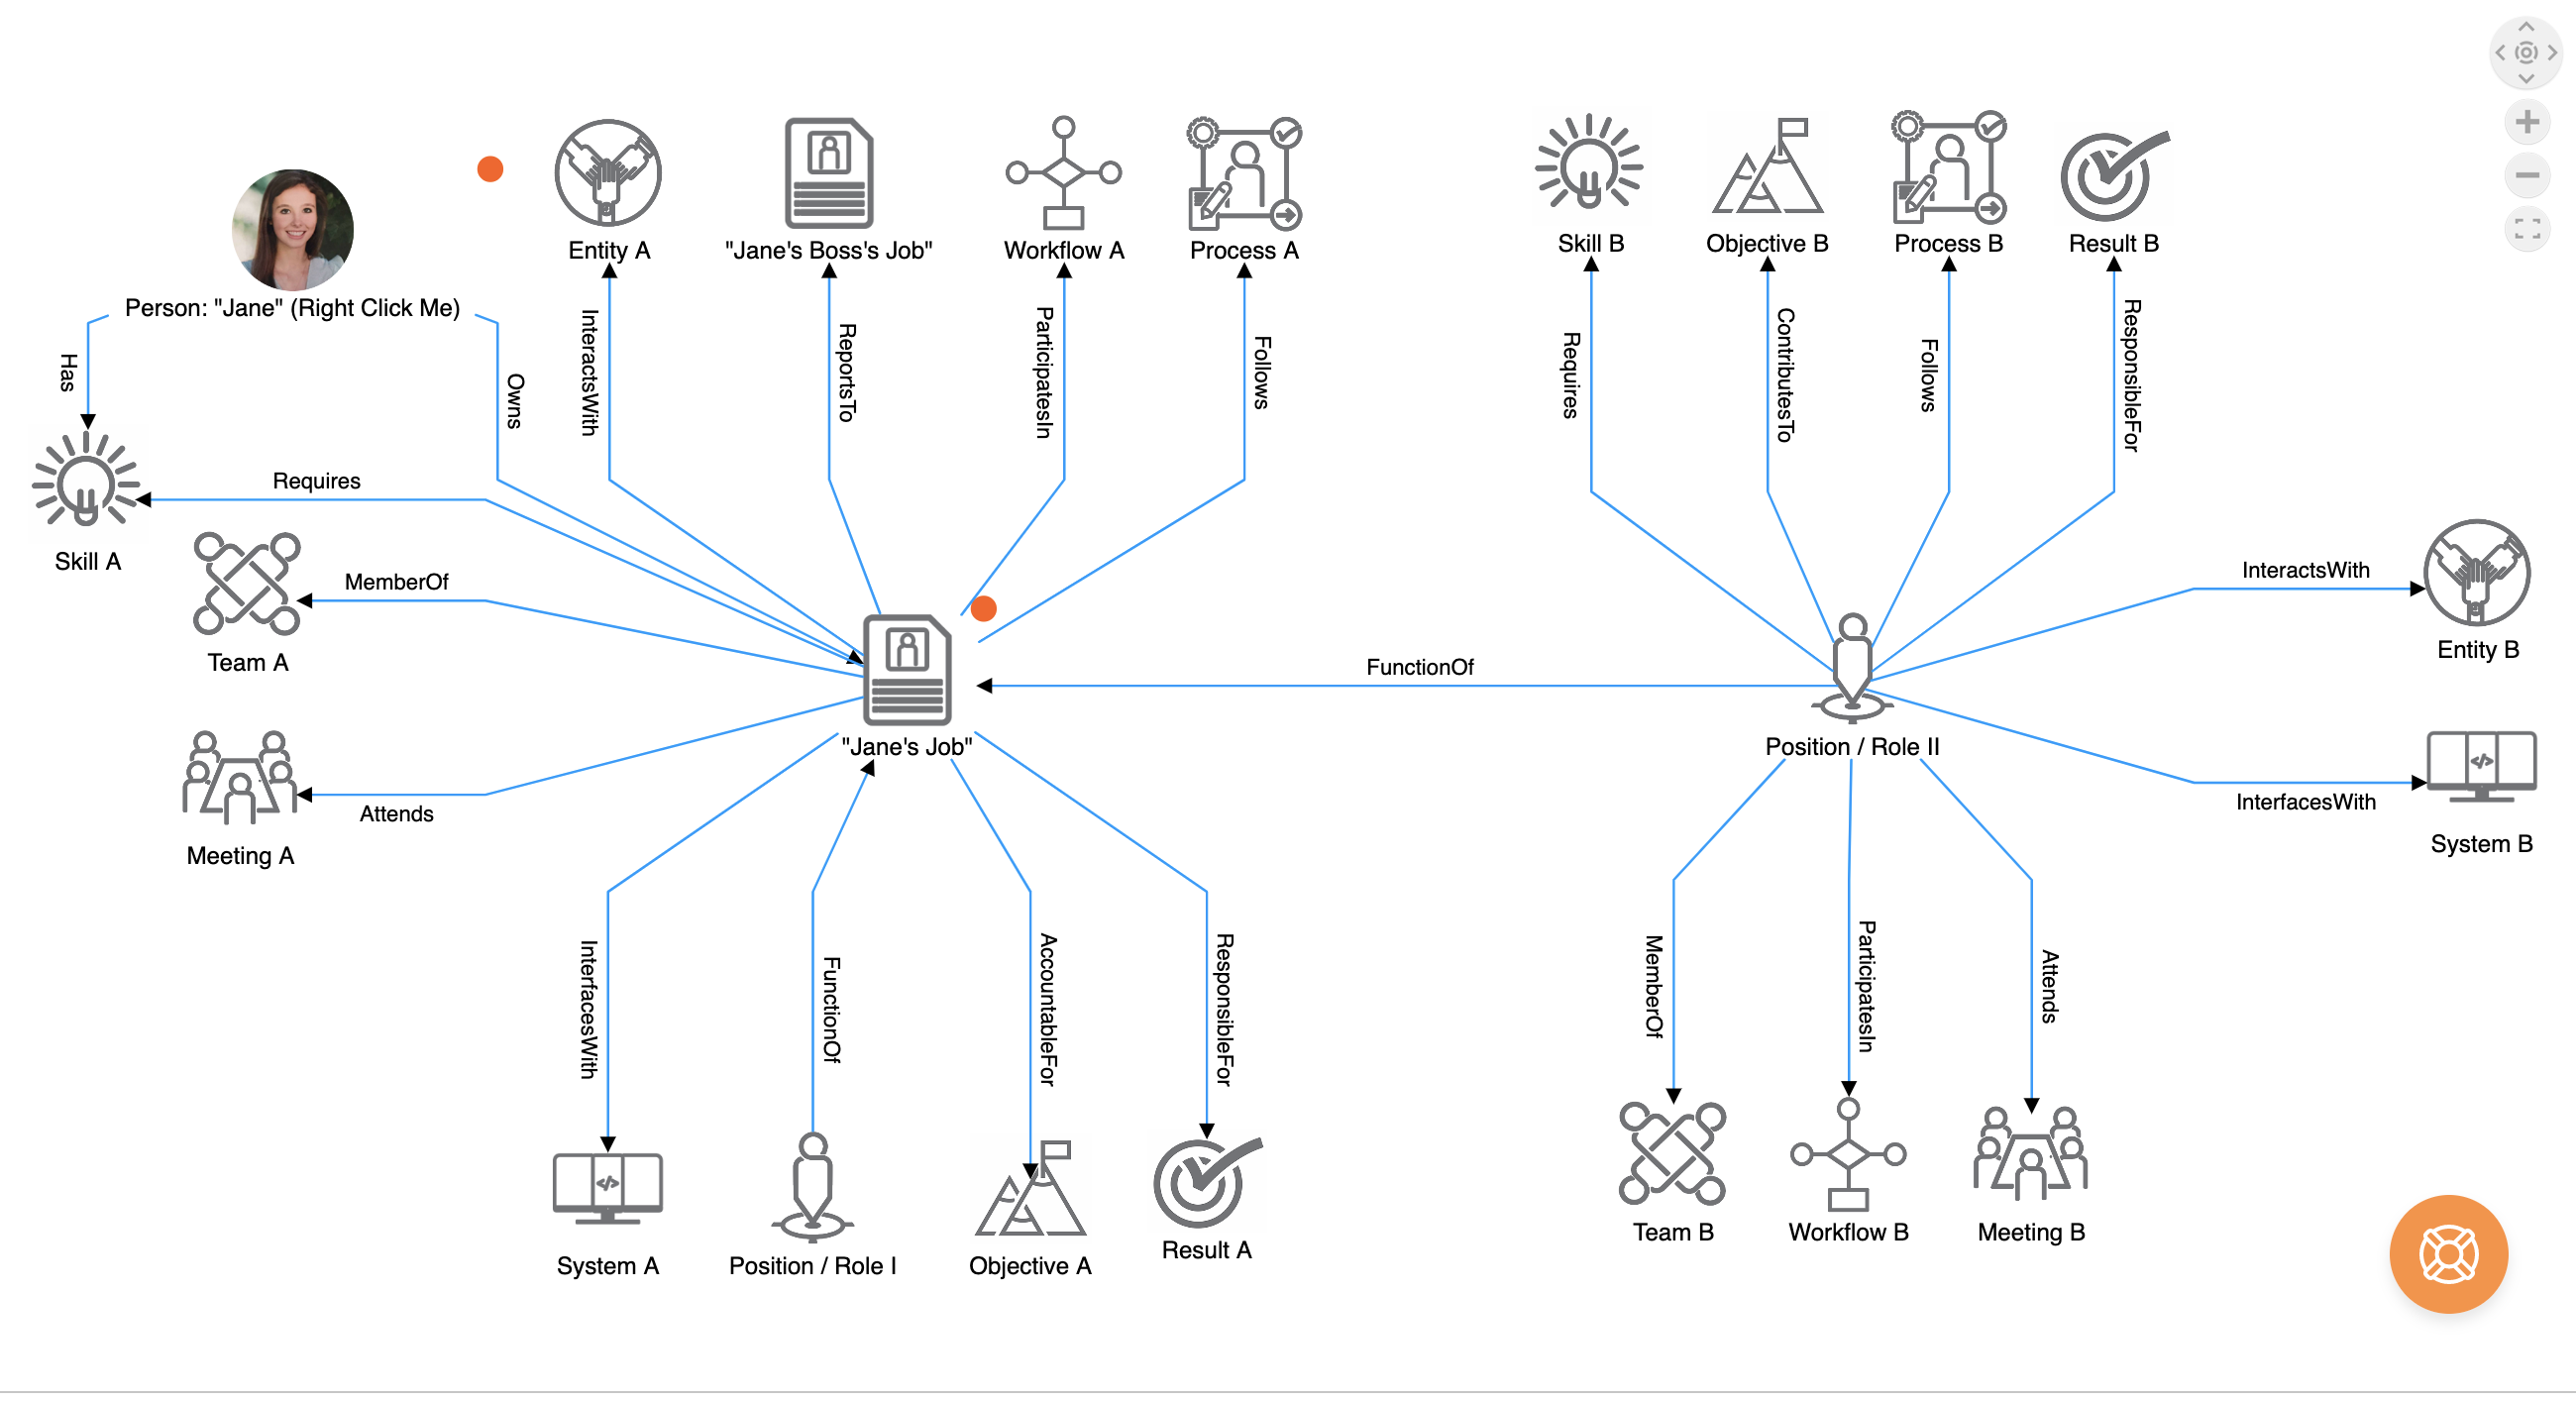 Org chart software of the future that includes 3D visualizations like the one shown above where an individual is completely cognizant of the design and structure of their organization and how they fit into the organizational chart.An individual can quickly see everything they are accountable for